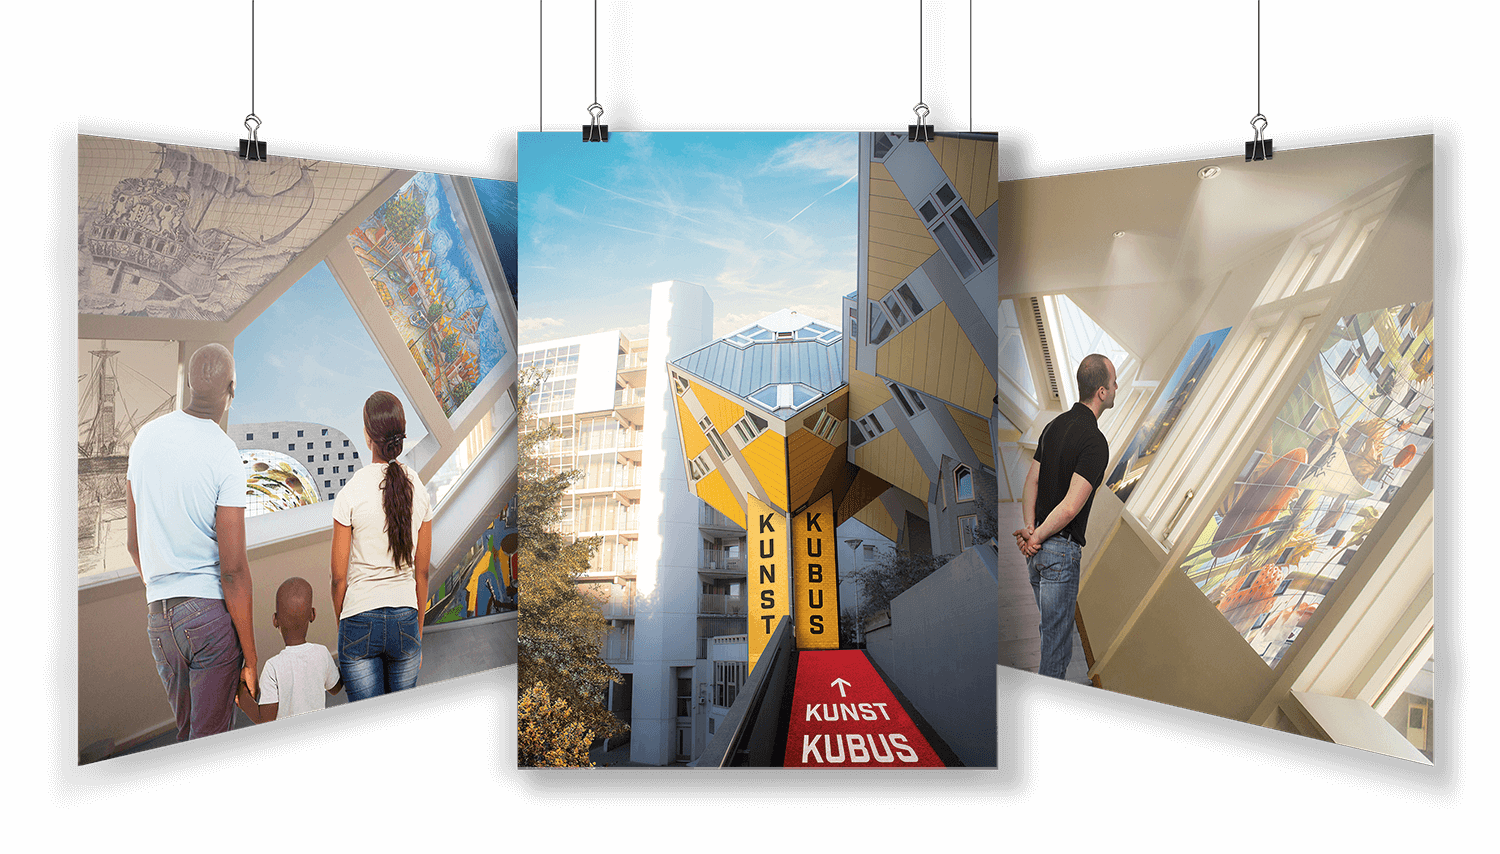 Large format and exhibition graphics design for Kunstkubus